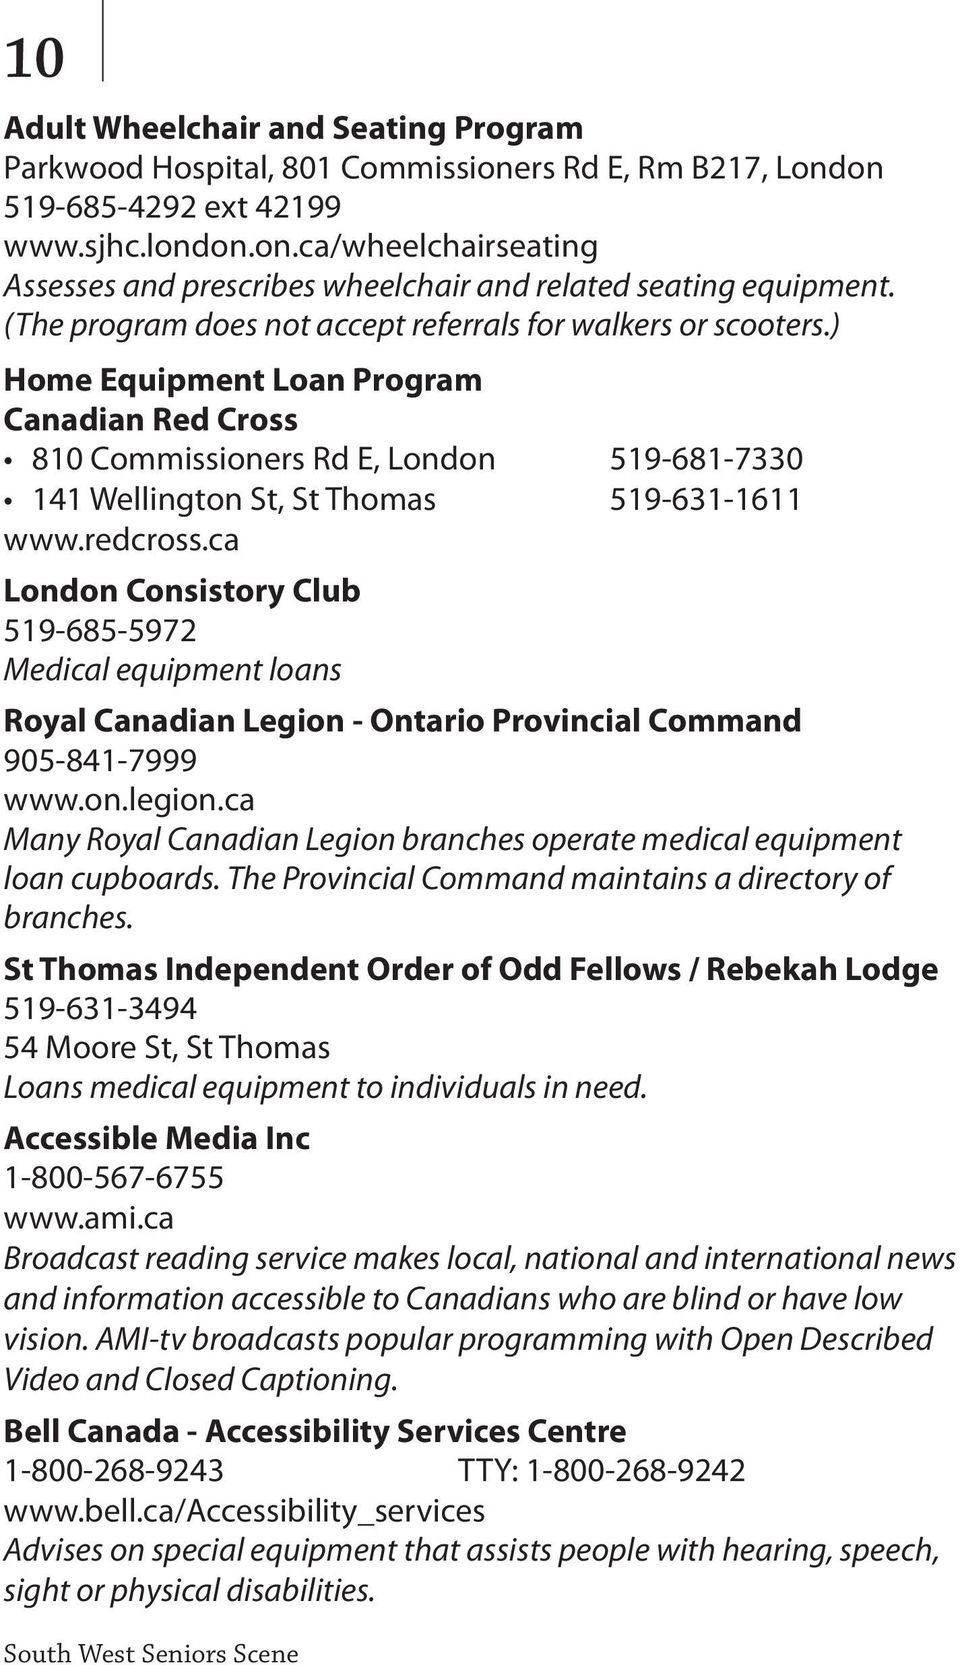 ) Home Equipment Loan Program Canadian Red Cross 810 Commissioners Rd E, London 519-681-7330 141 Wellington St, St Thomas 519-631-1611 www.redcross.